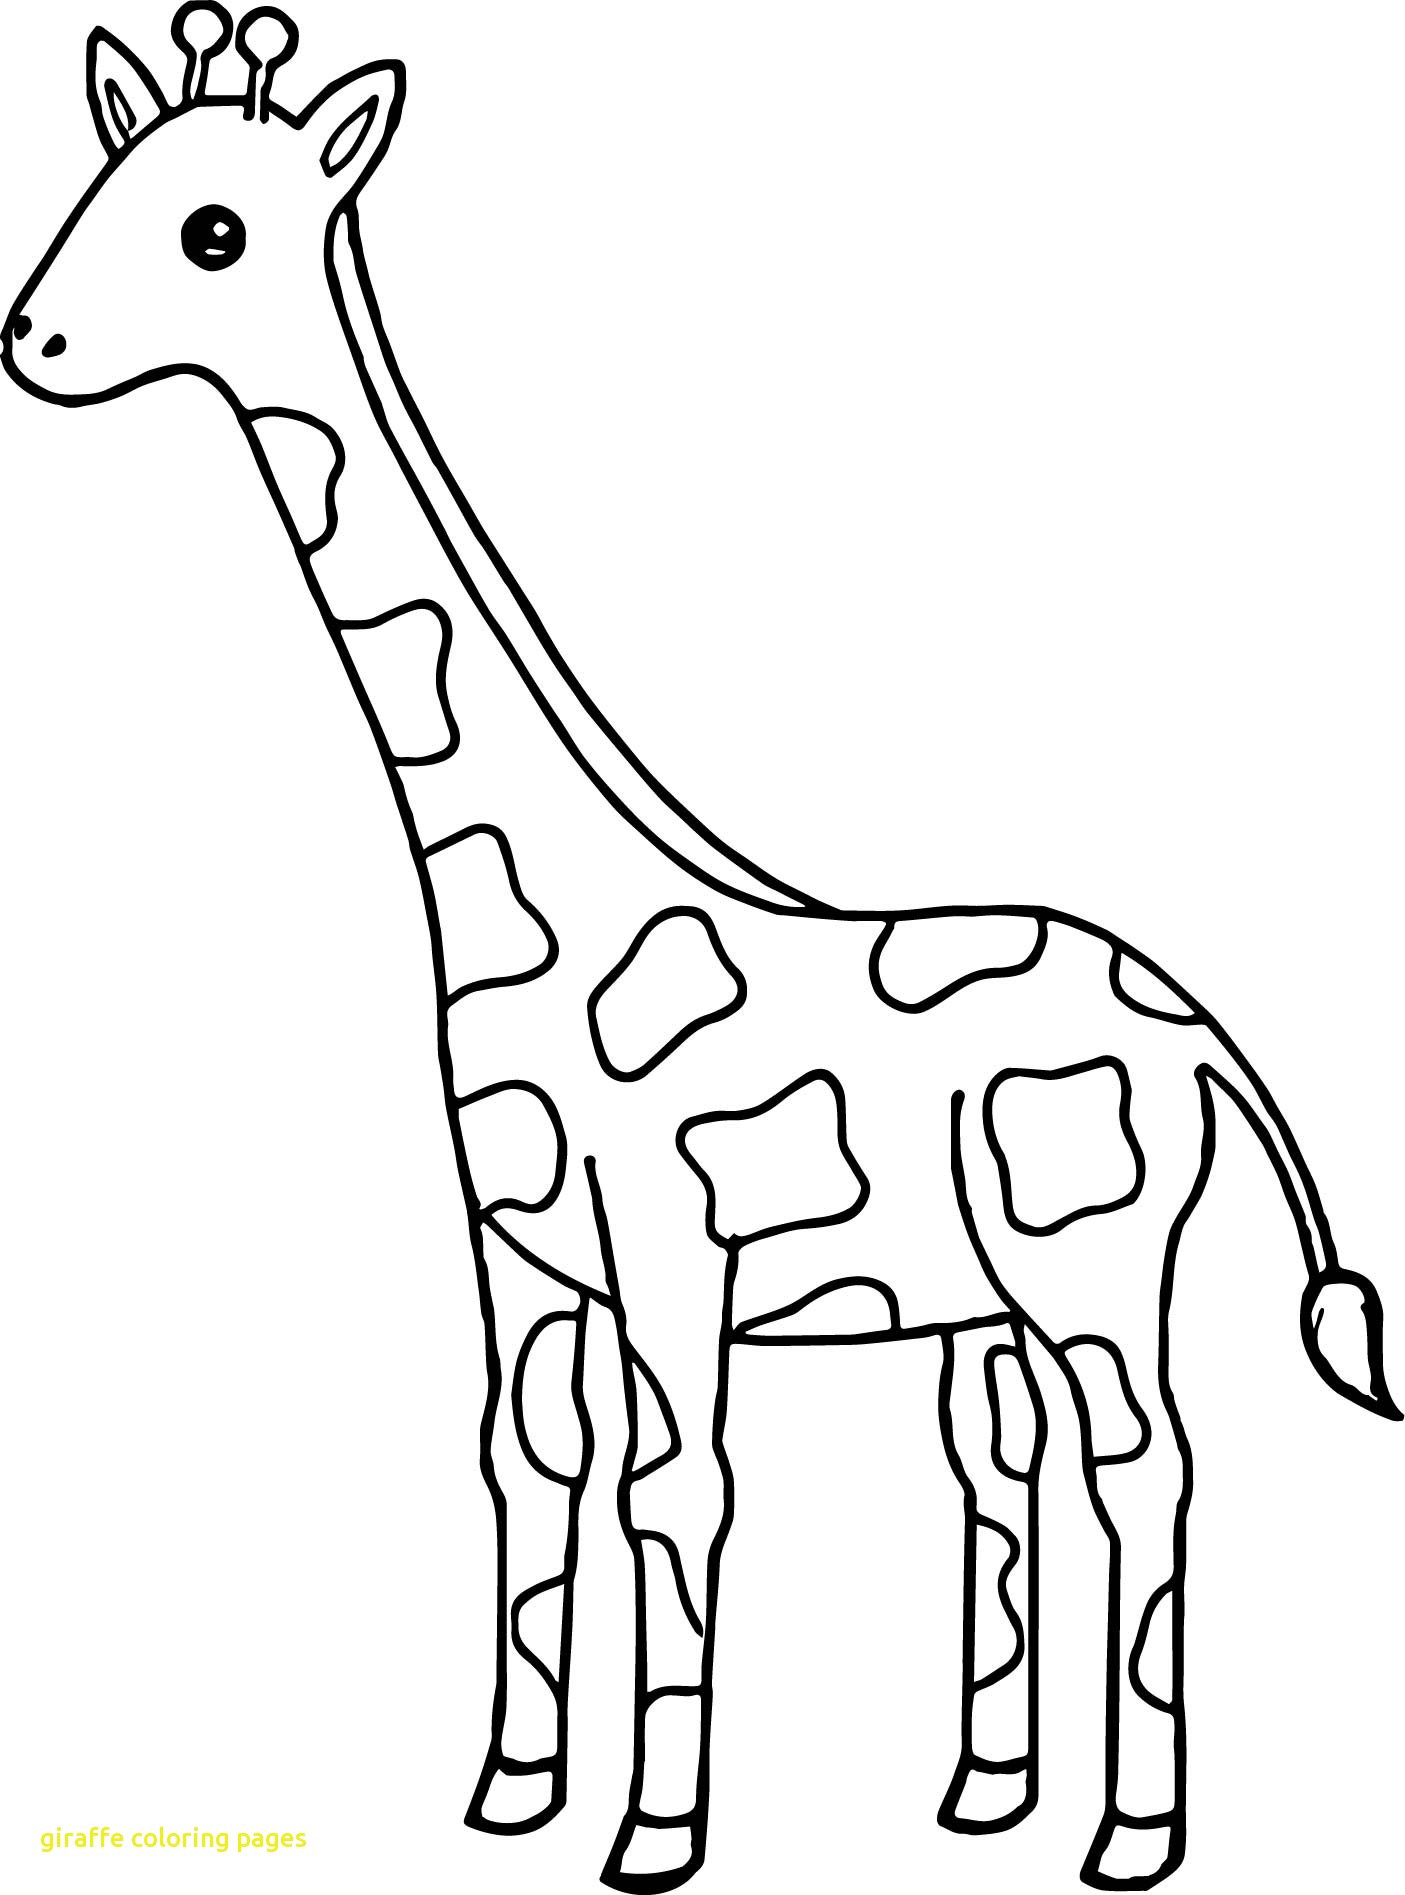 1405x1895 Giraffe Coloring Pages High Definition To Print Adorable